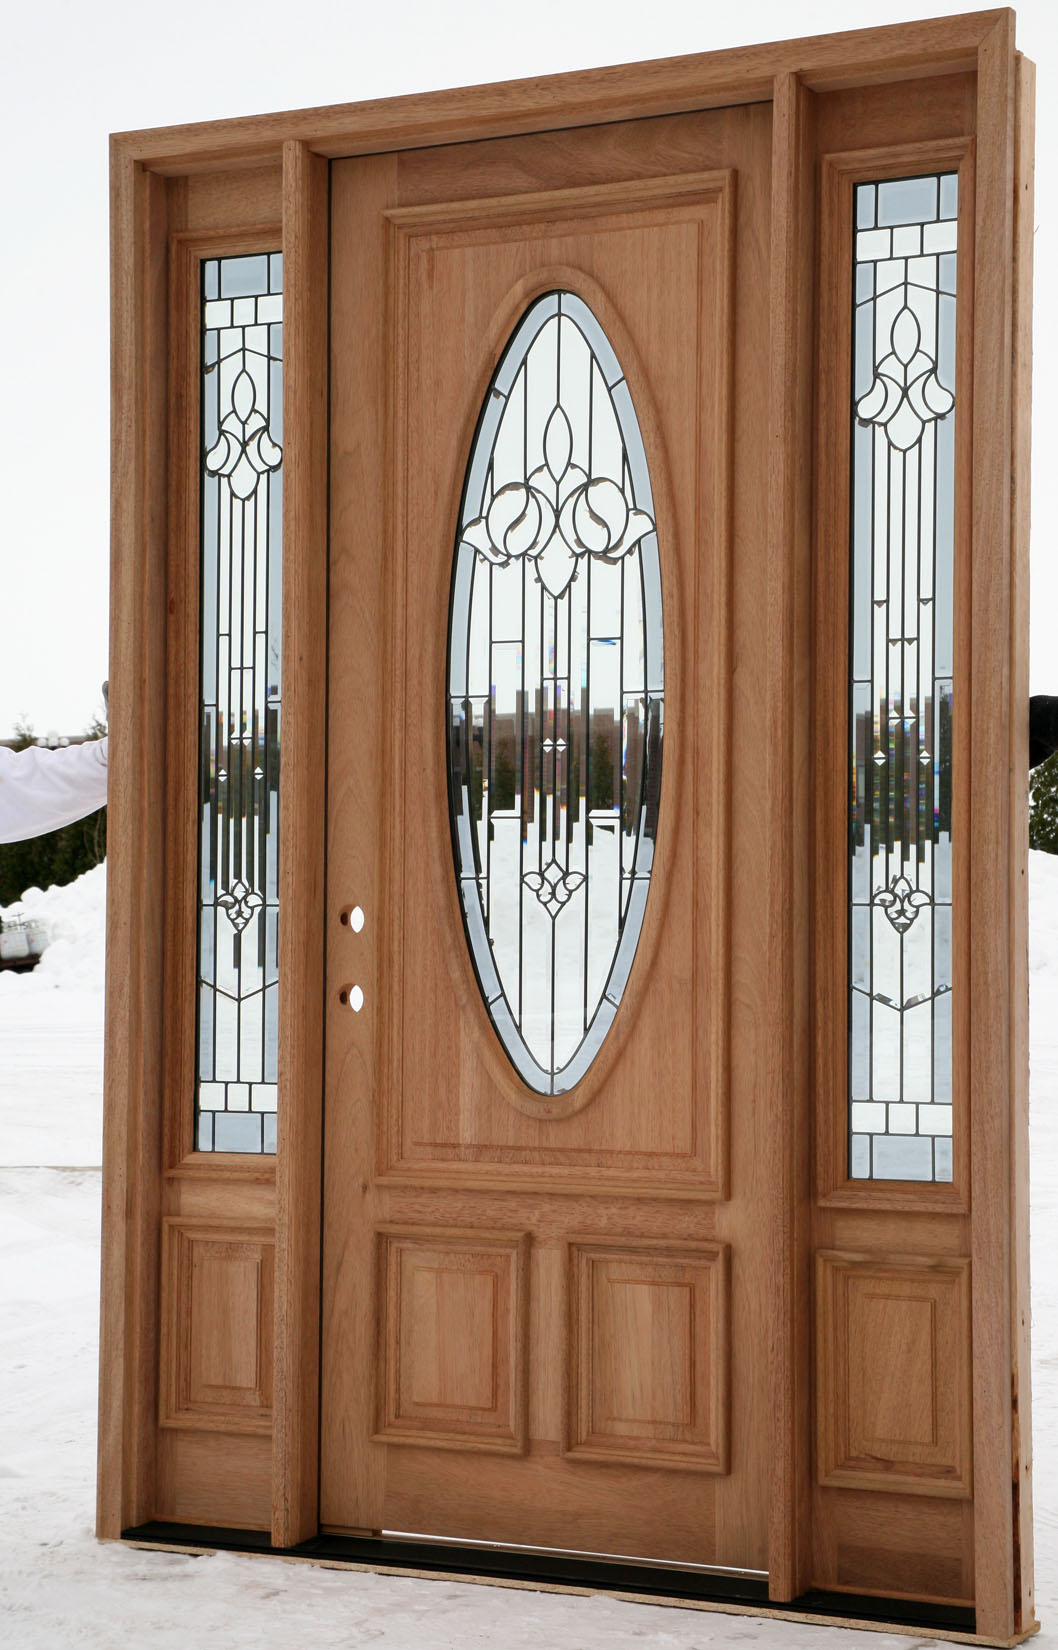 Front doors creative ideas wood front doors with glass for Exterior front entry wood doors with glass